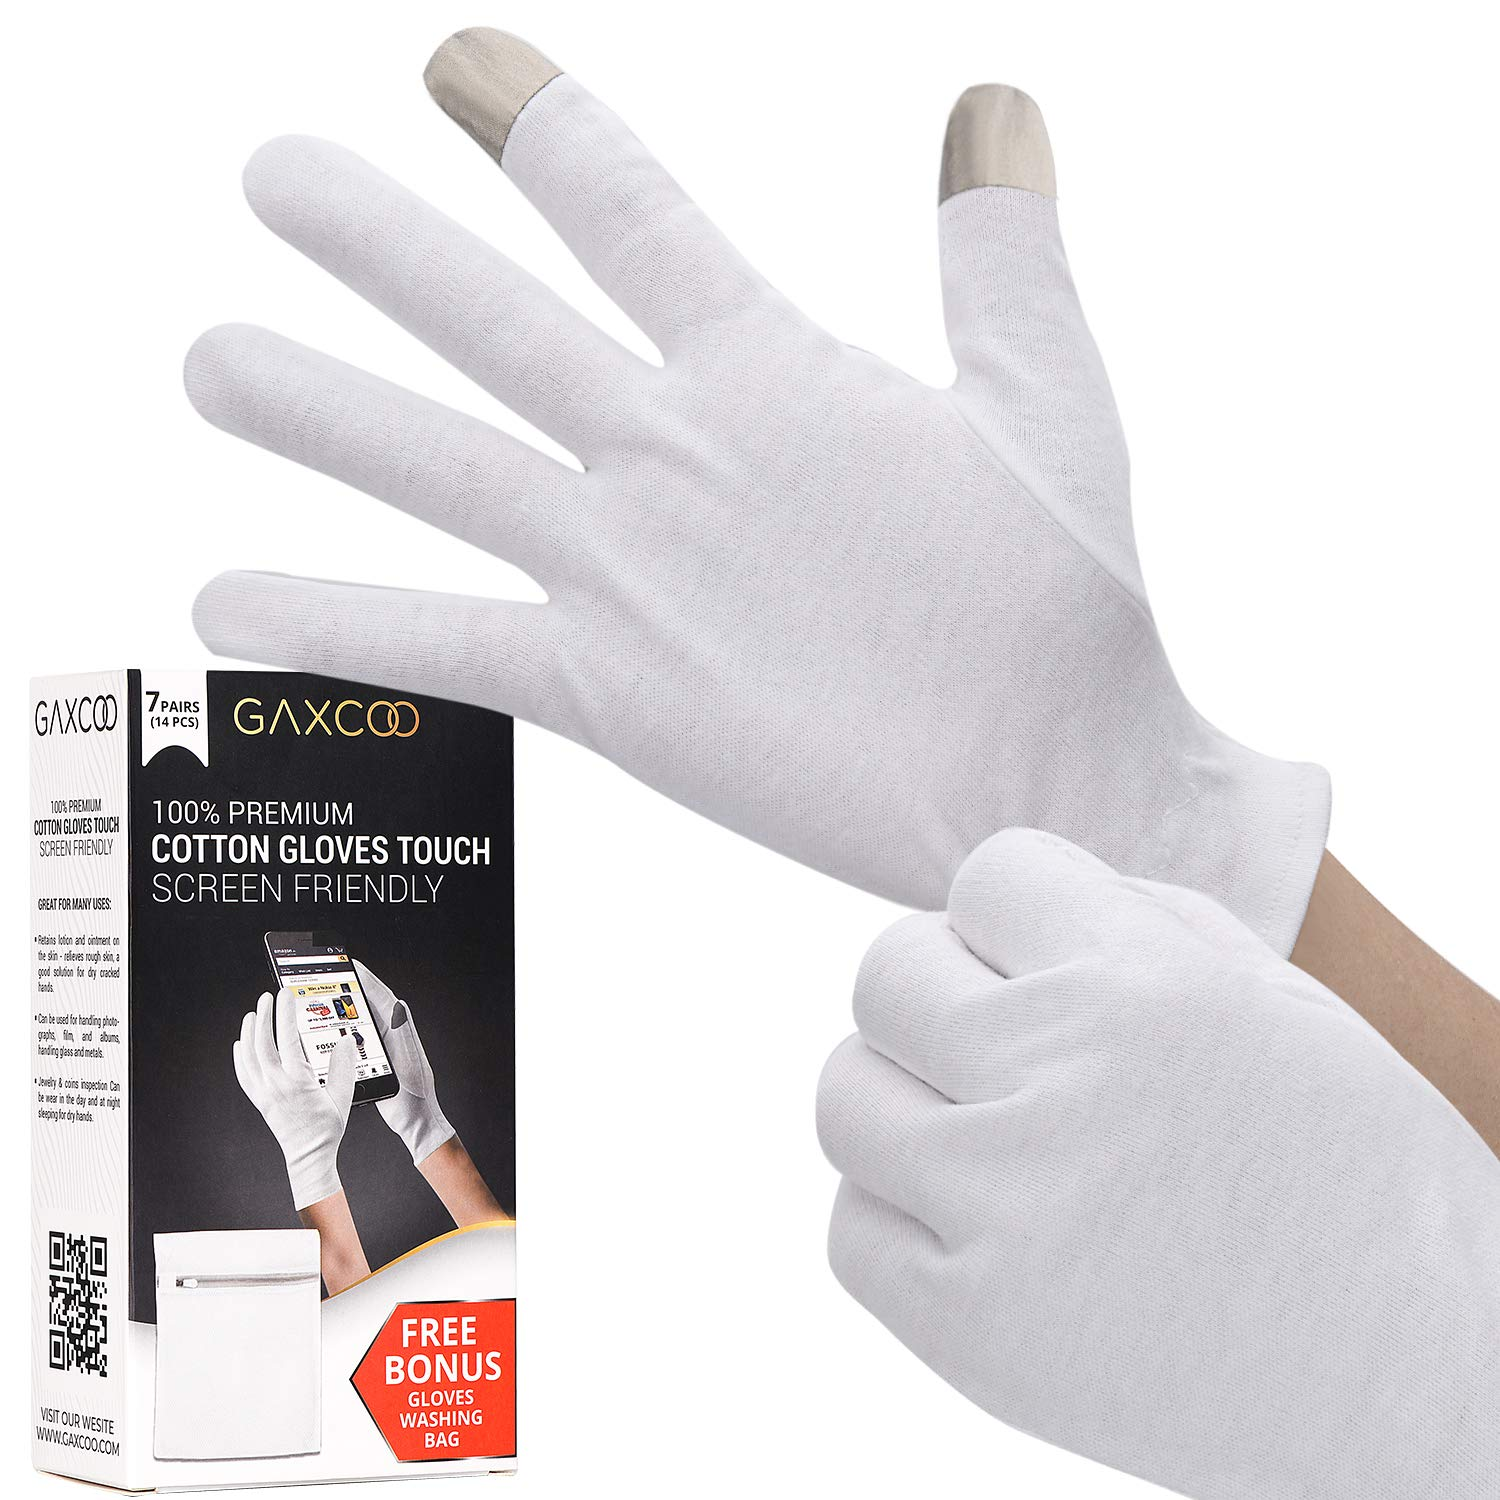 Touch Screen Friendly Moisturizing Gloves OverNight Bedtime Cotton Cosmetic Inspection Premium Cloth Quality Eczema Dry Sensitive Irritated Skin Spa Therapy Secure Wristband : Beauty